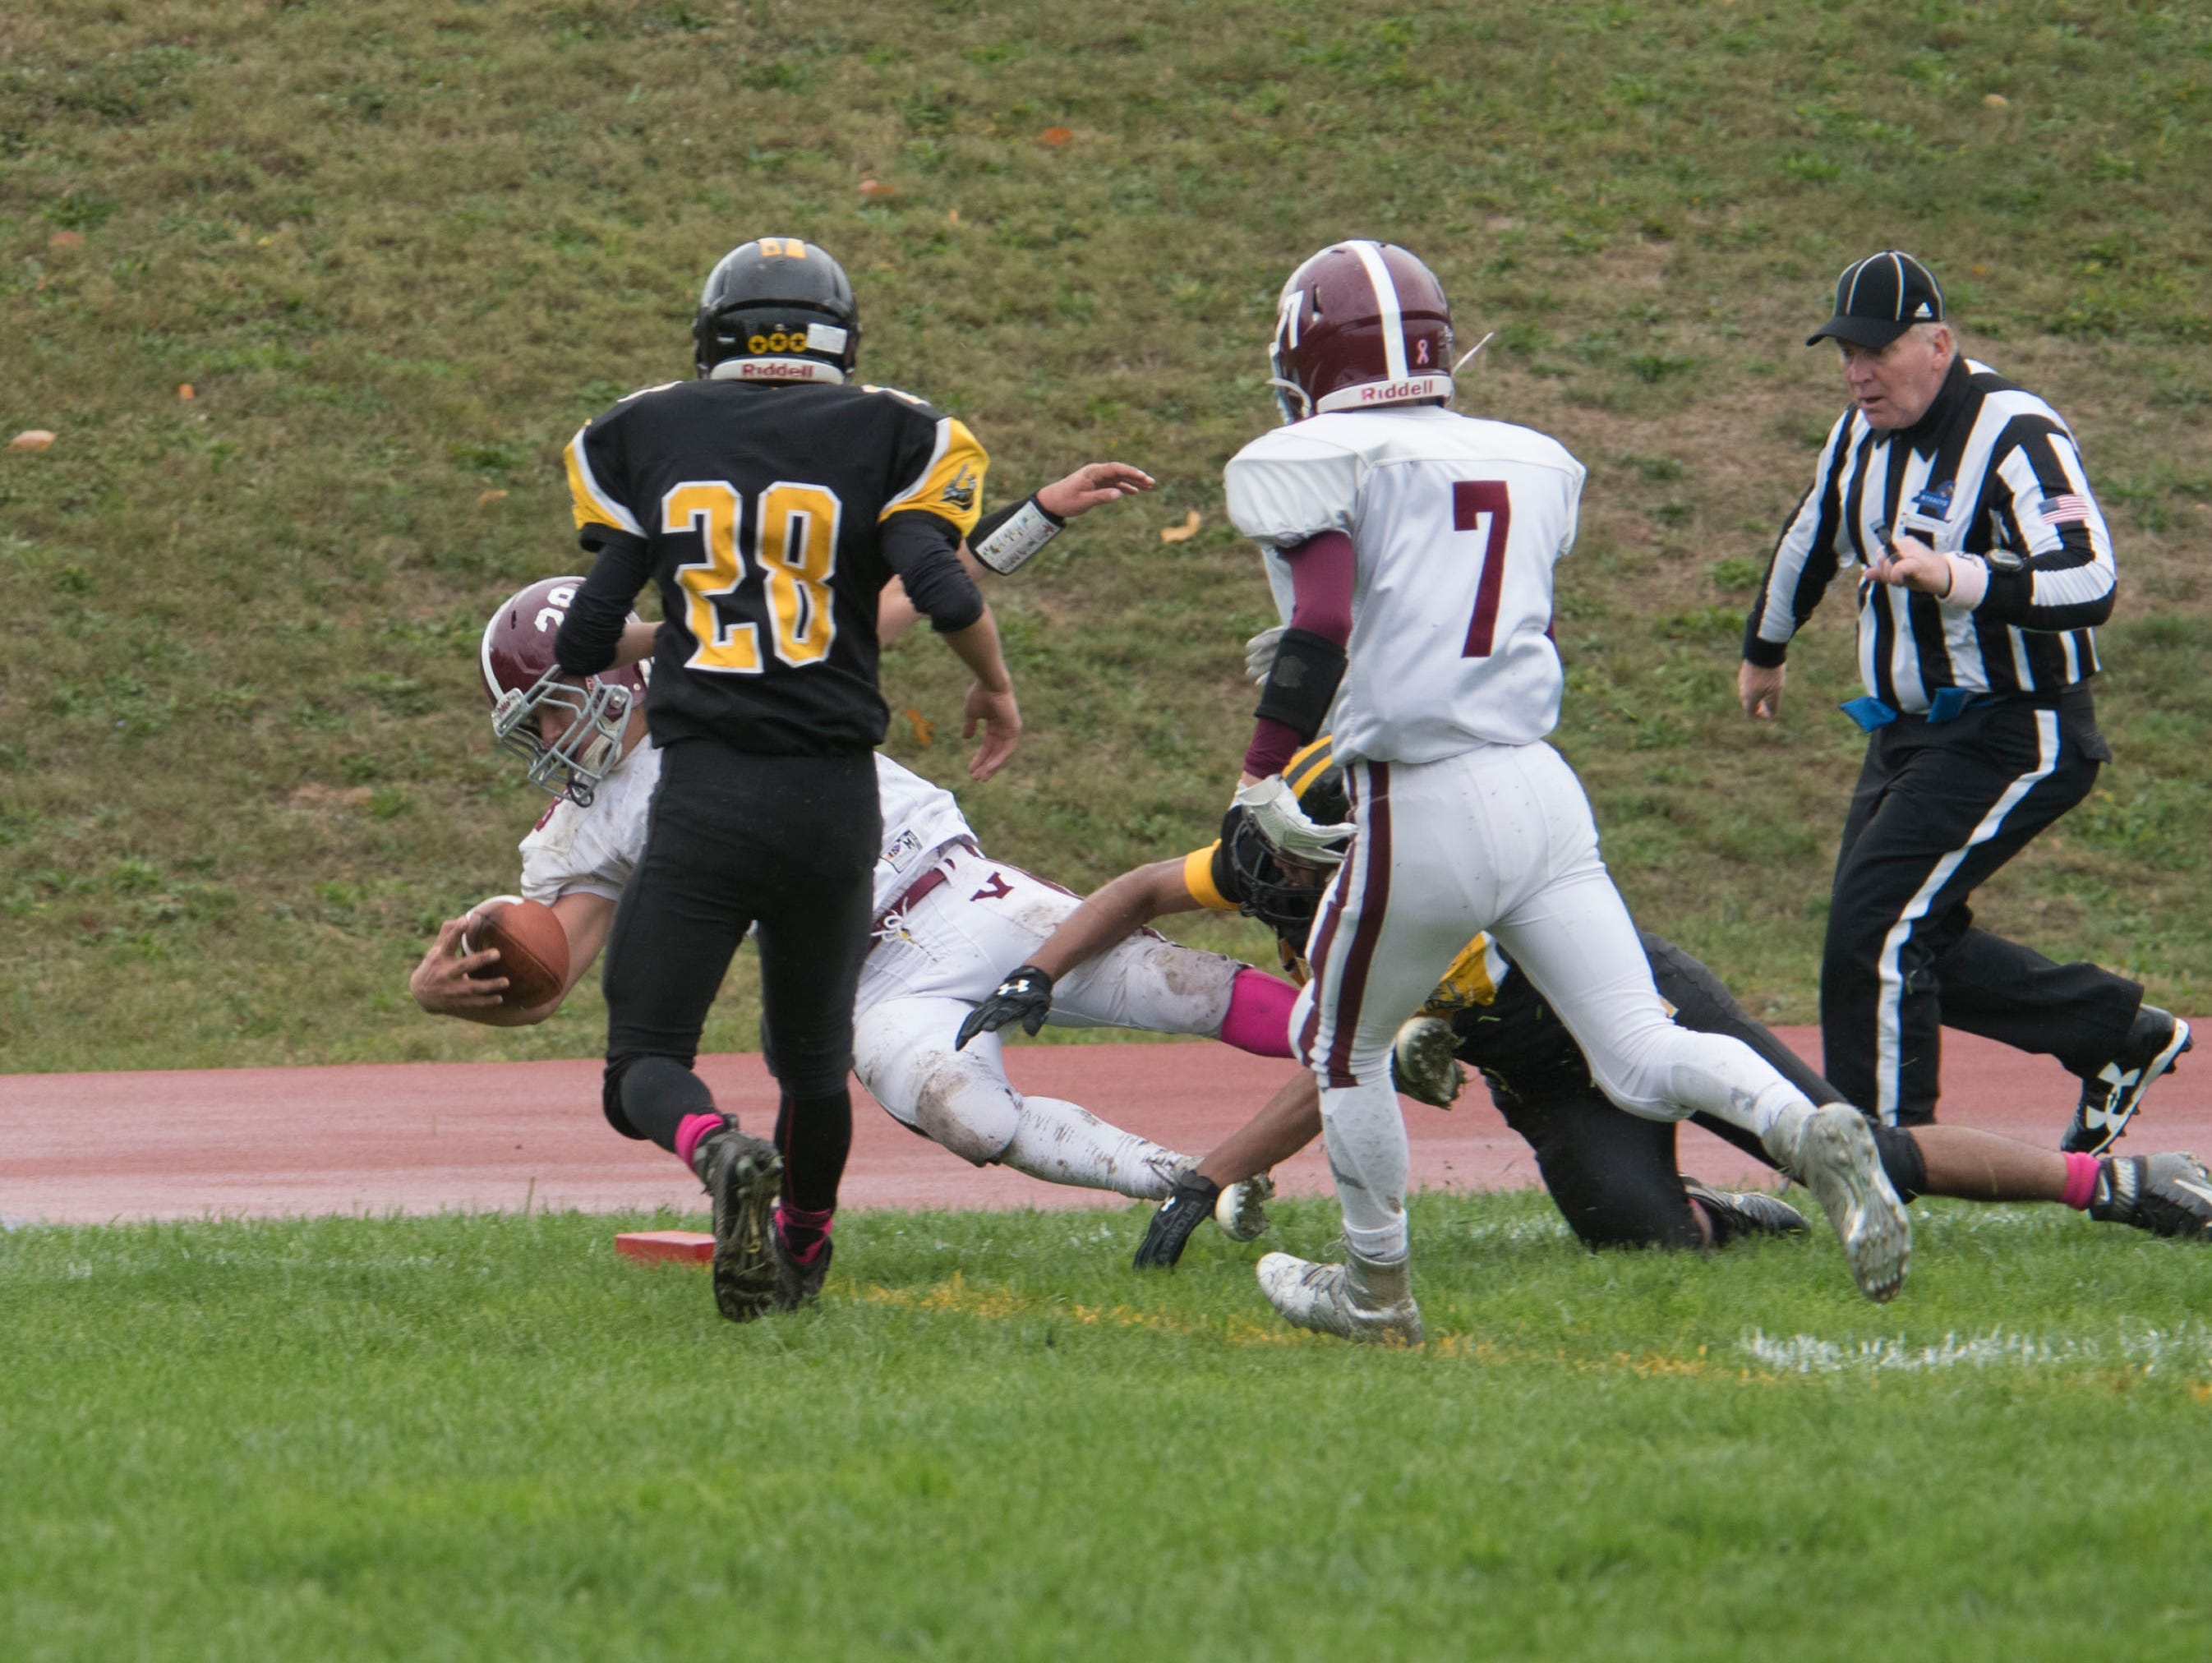 The Valhalla Vikings beat the Nanuet Golden Knights 22-21 in Nanuet on Saturday